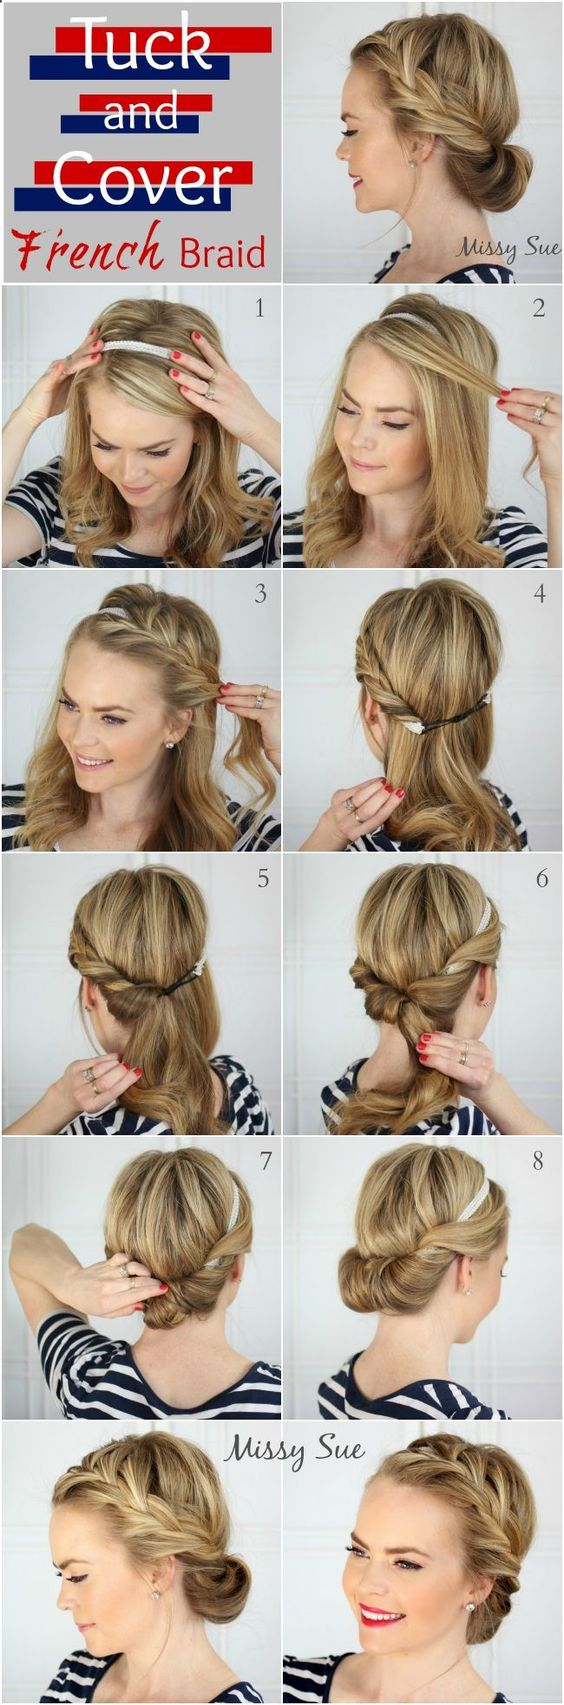 Chignon Tutoriels De Tresse Franaise And T On Pinterest